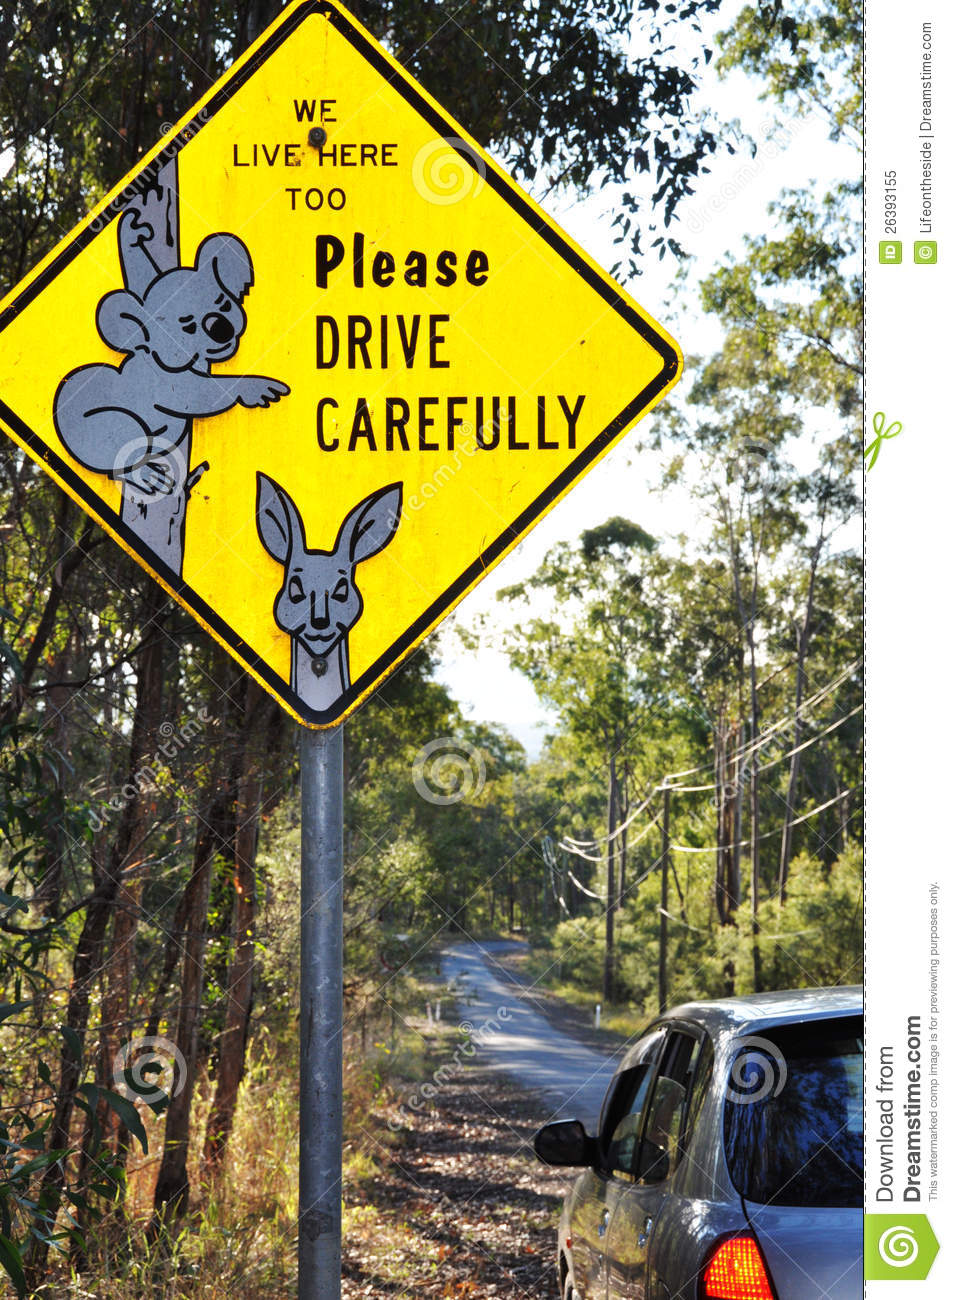 Time Road Id Roblox: Unique Australian Wildlife Road Sign Of Koala Stock Image